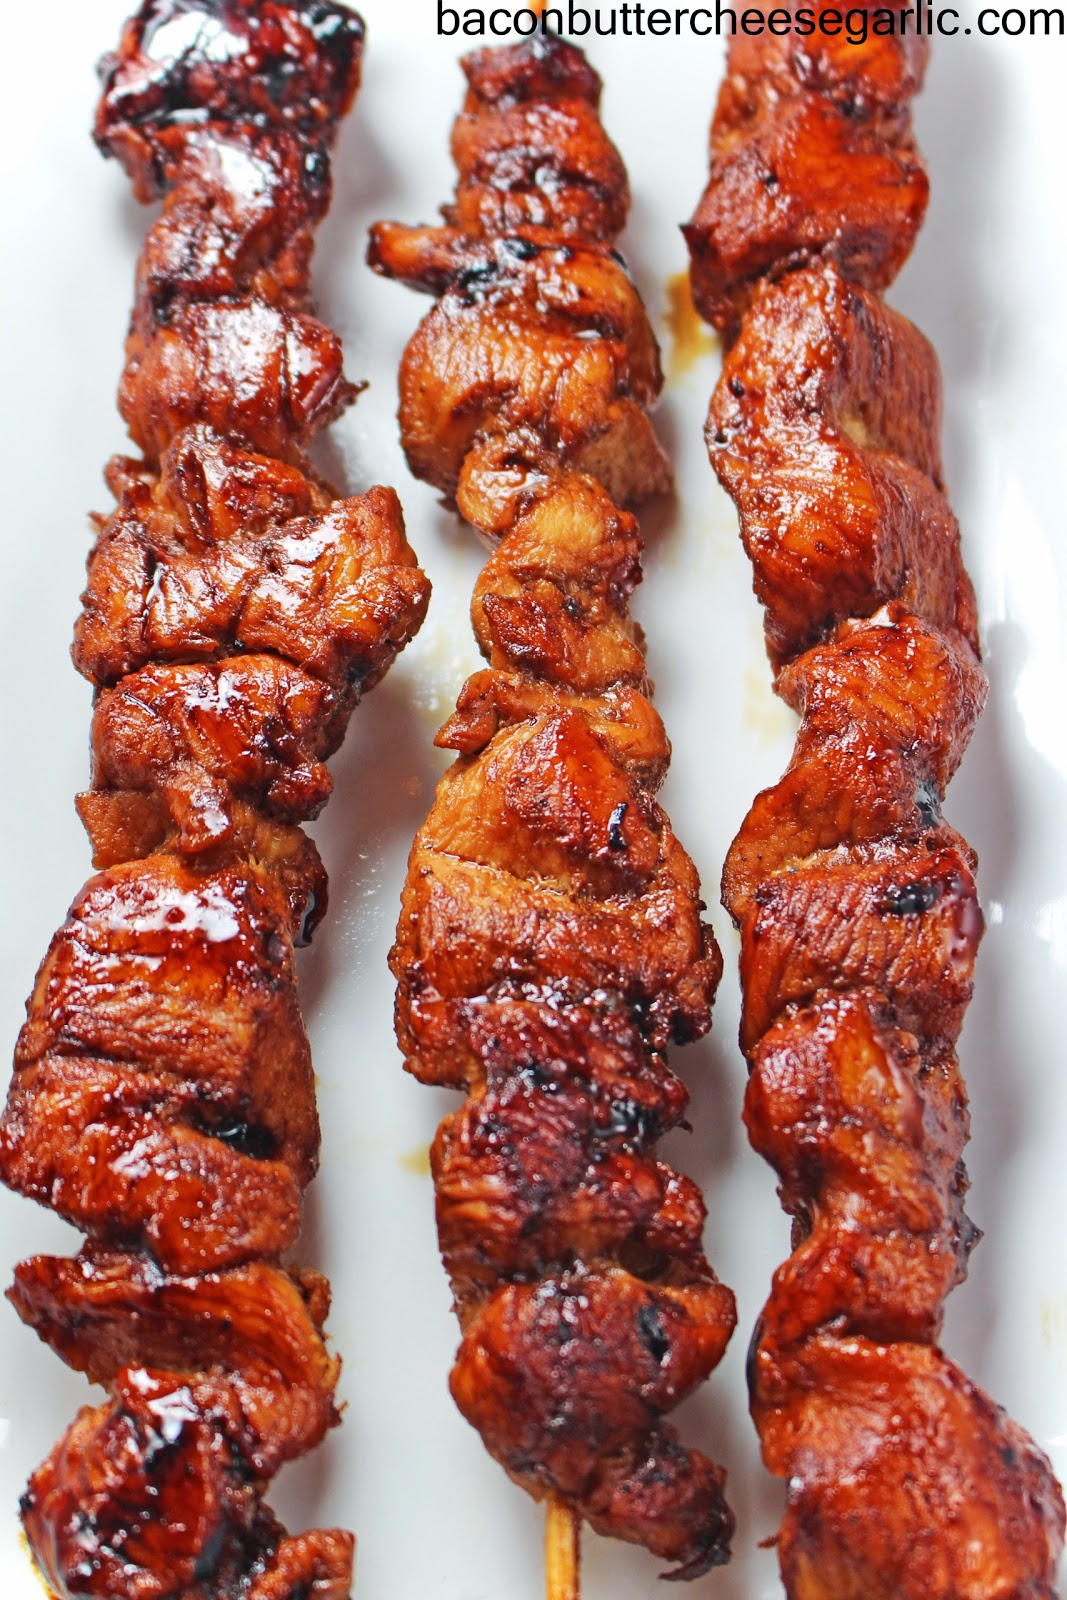 Bacon, Butter, Cheese & Garlic: Chicken on a Stick